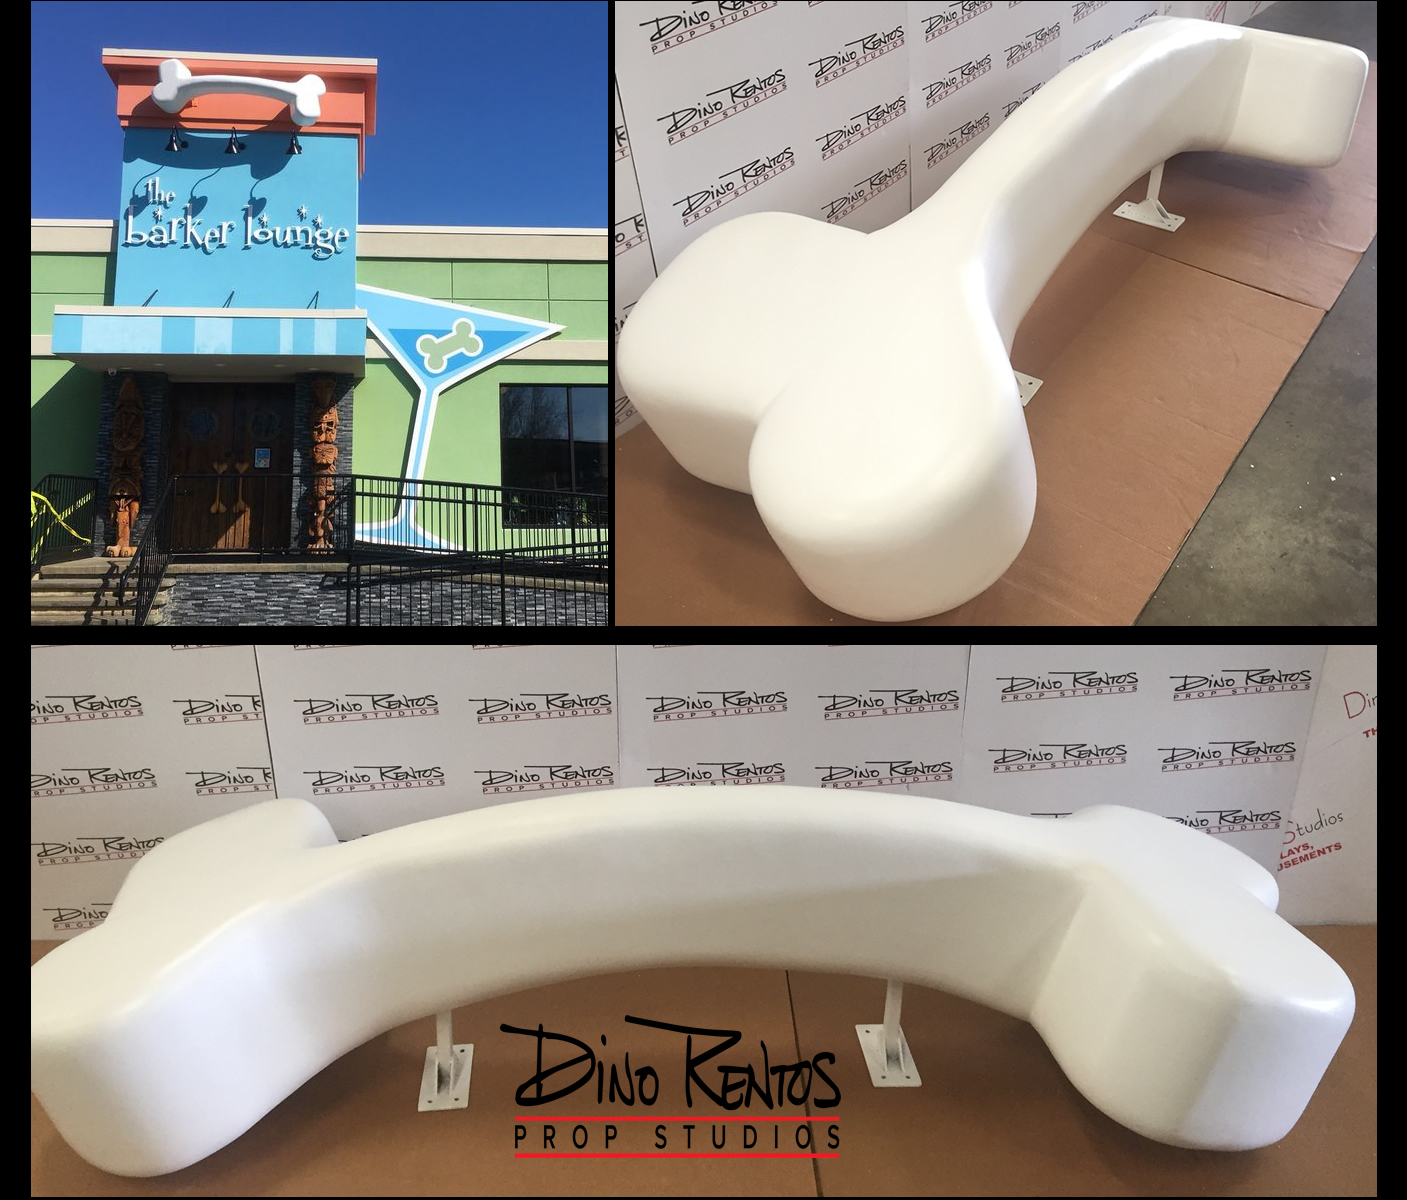 Large scenic foam dog bone for retail display at dog groomers